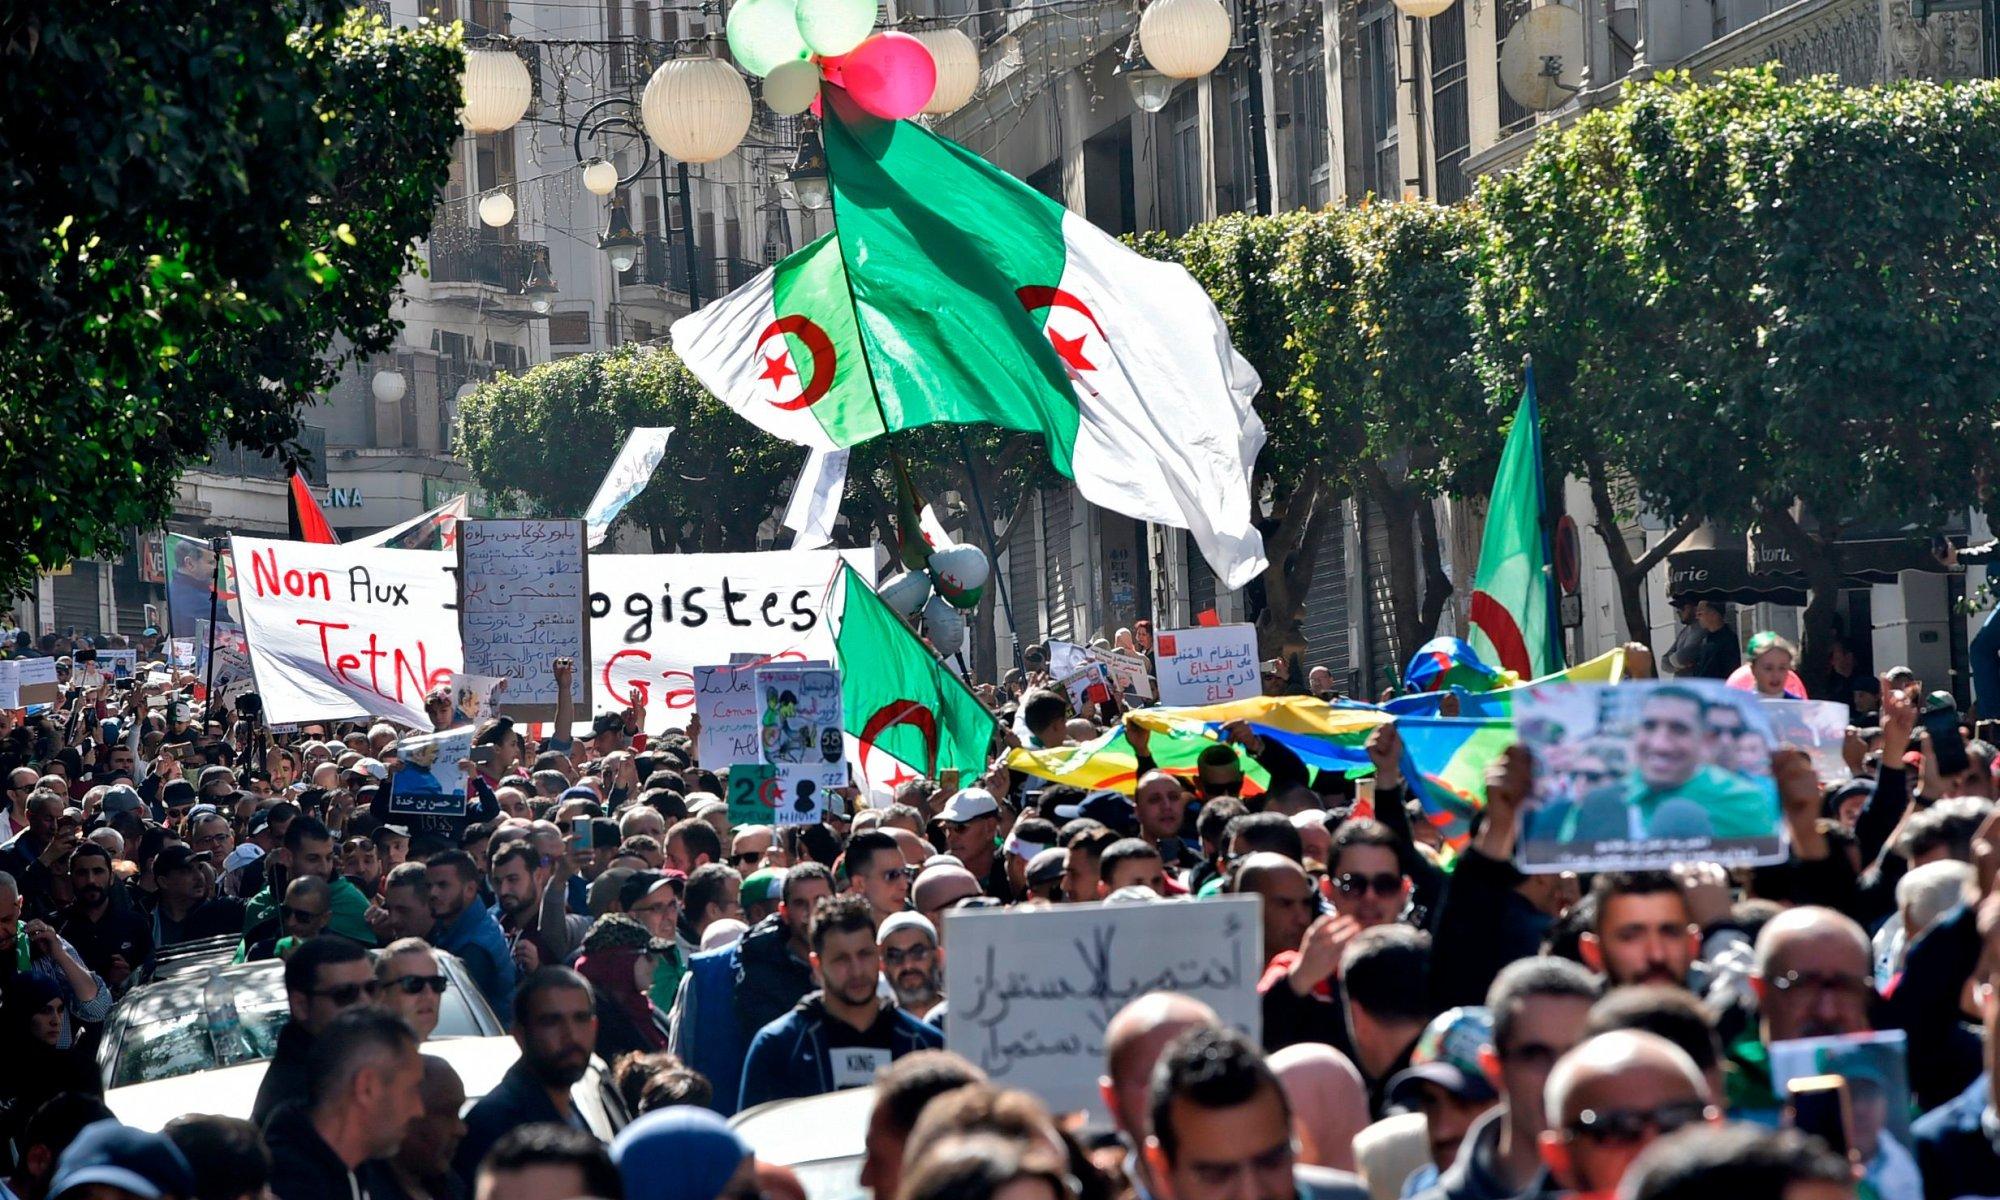 Mass of people in street, waving Algerian flag.